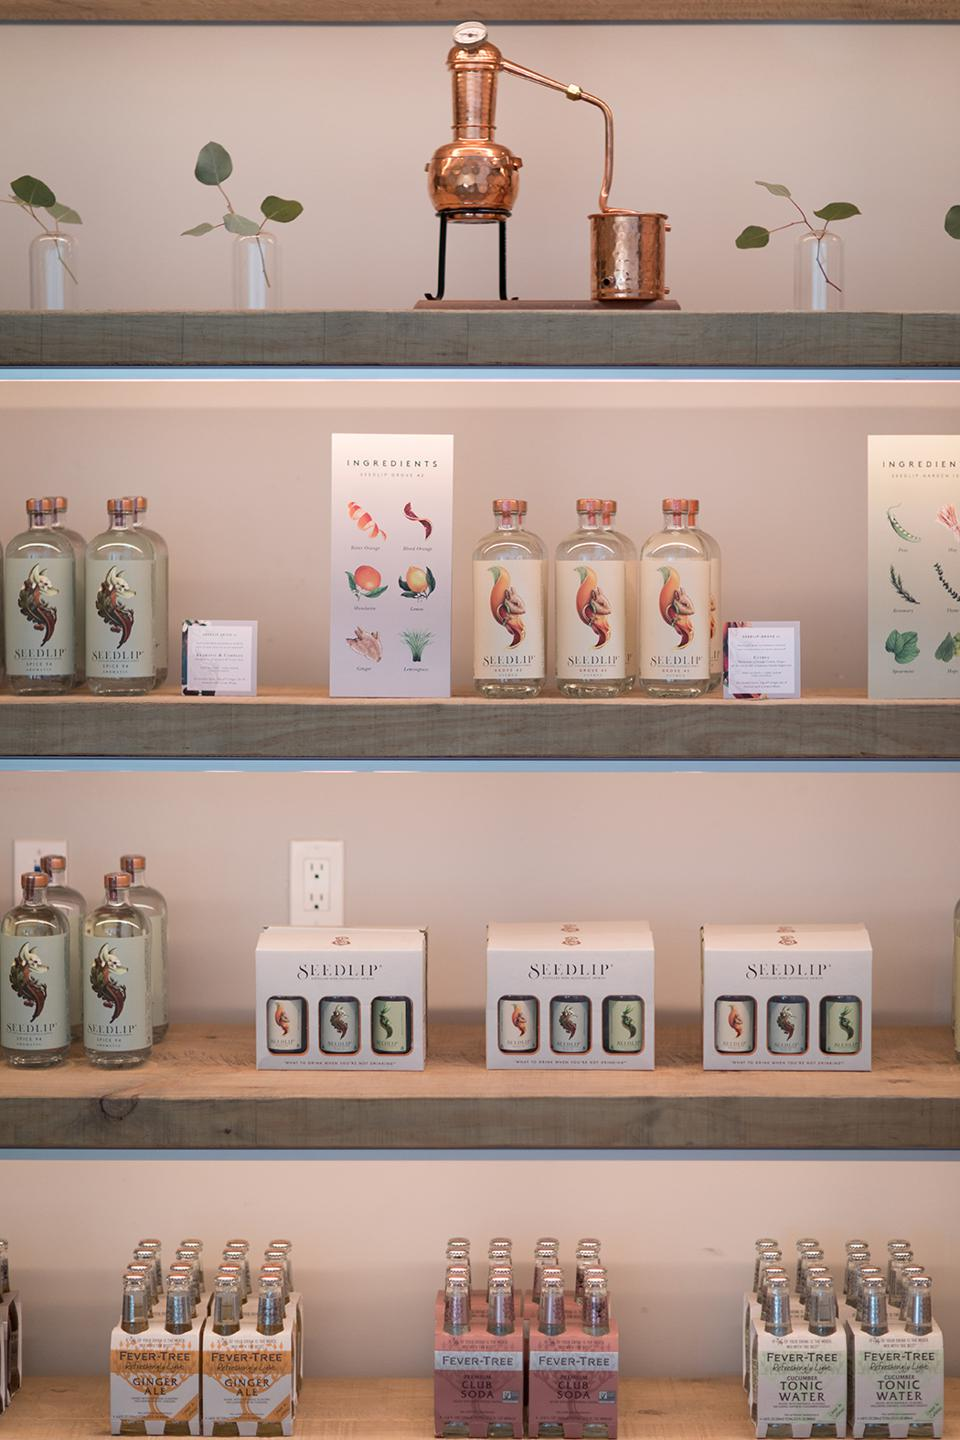 Some of the products for sale at the Seedlip General Store in Los Angeles.